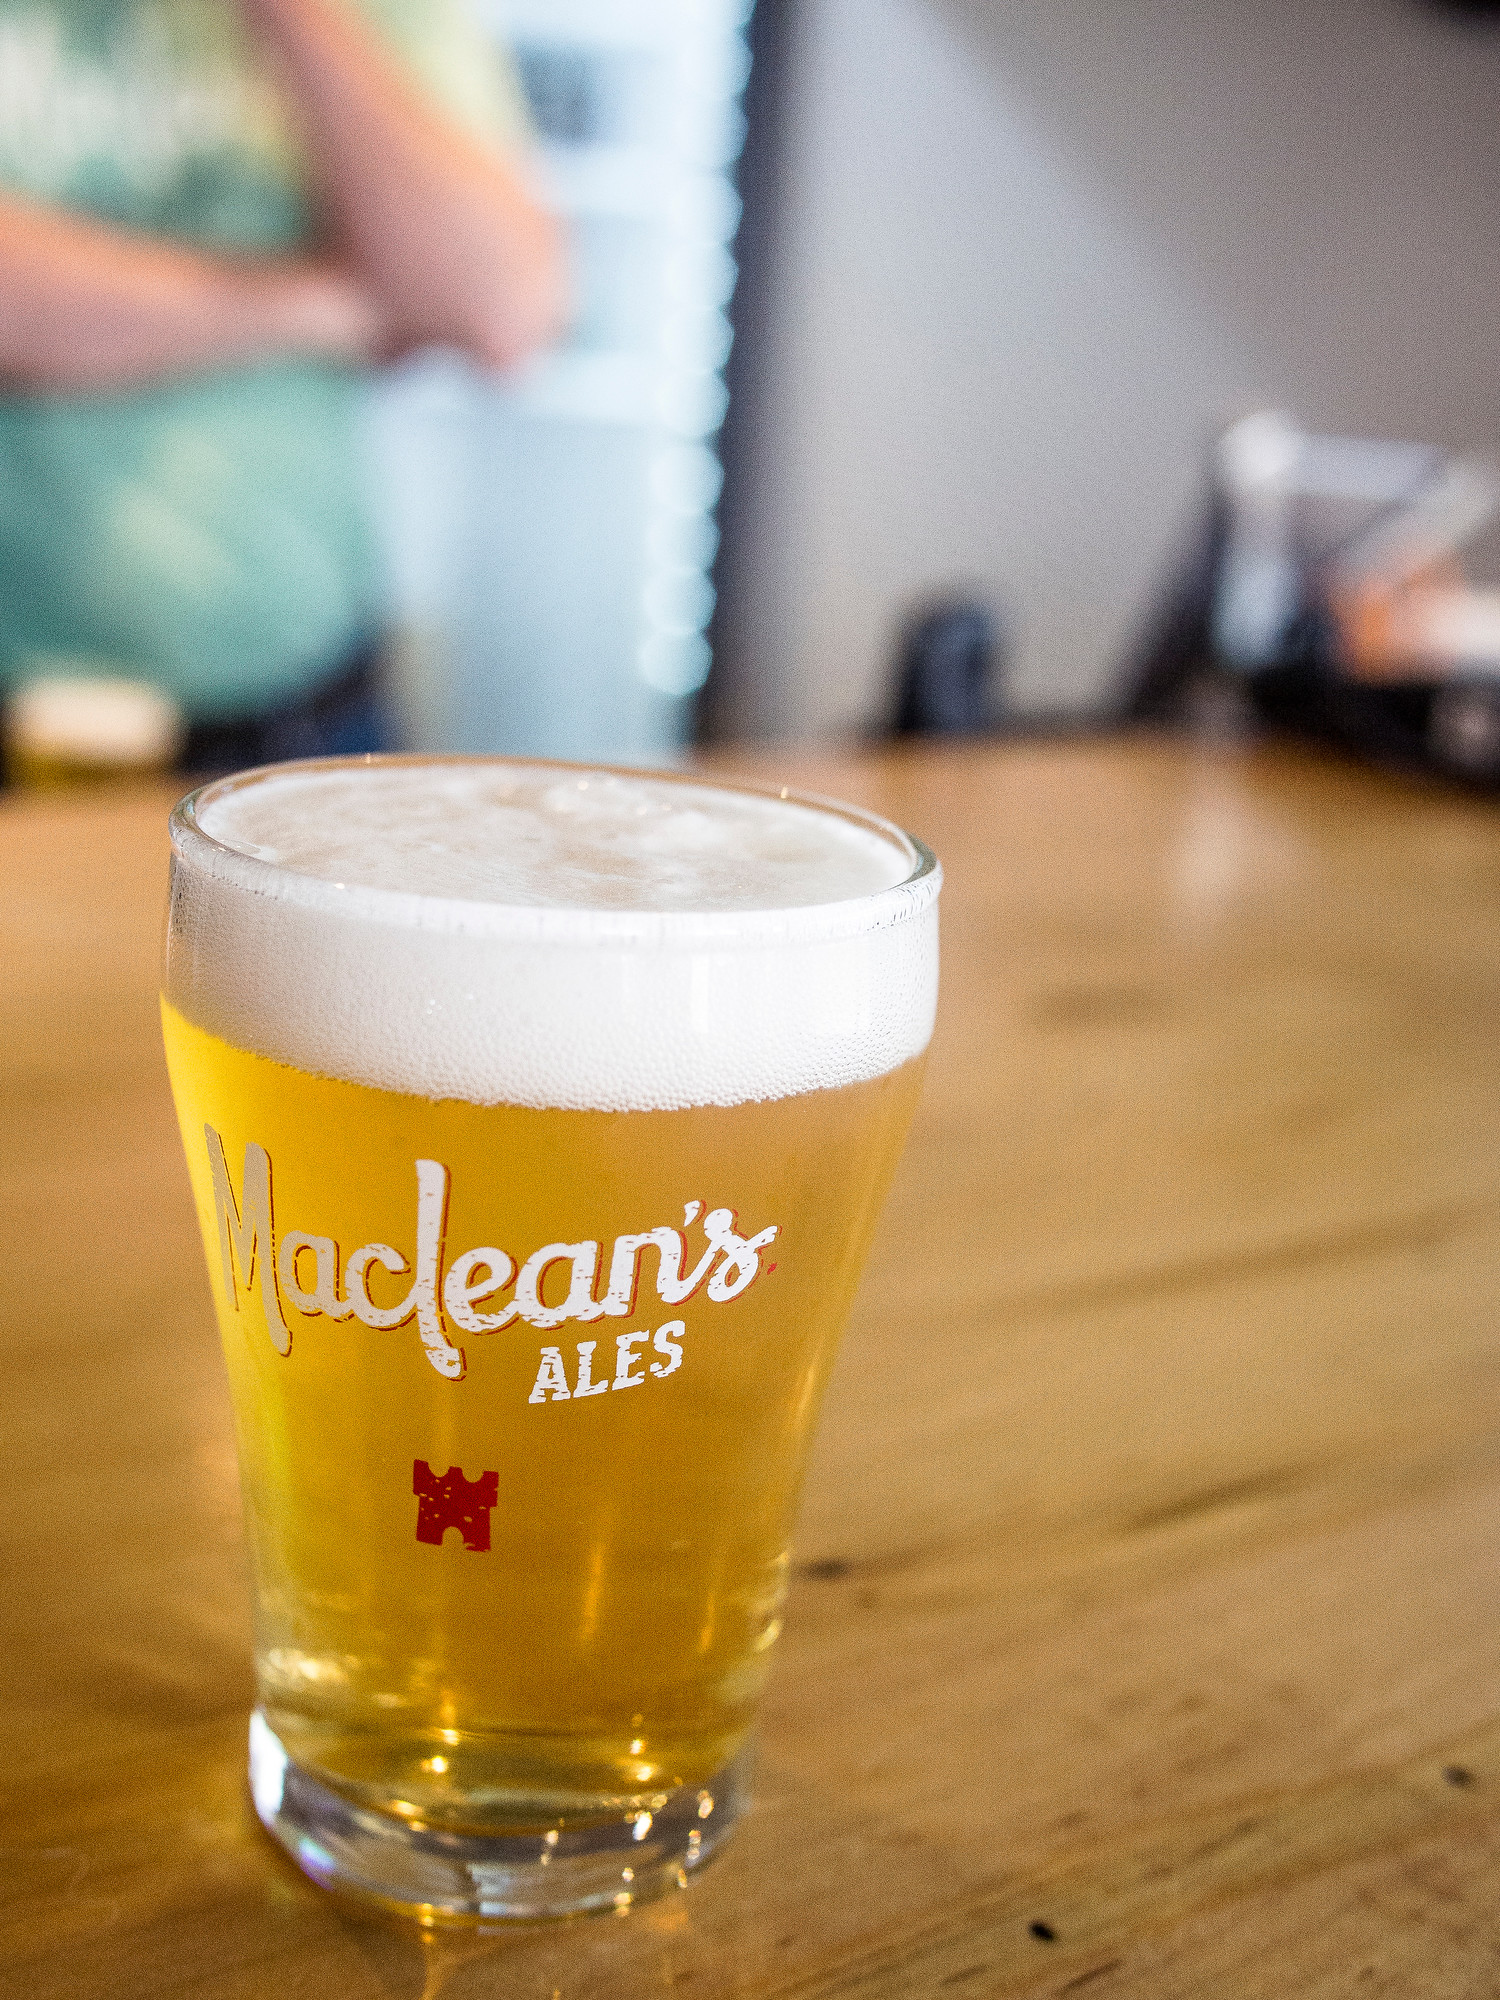 Maclean's Ales in Grey County is a great day trip from Toronto, check our their English style ales.